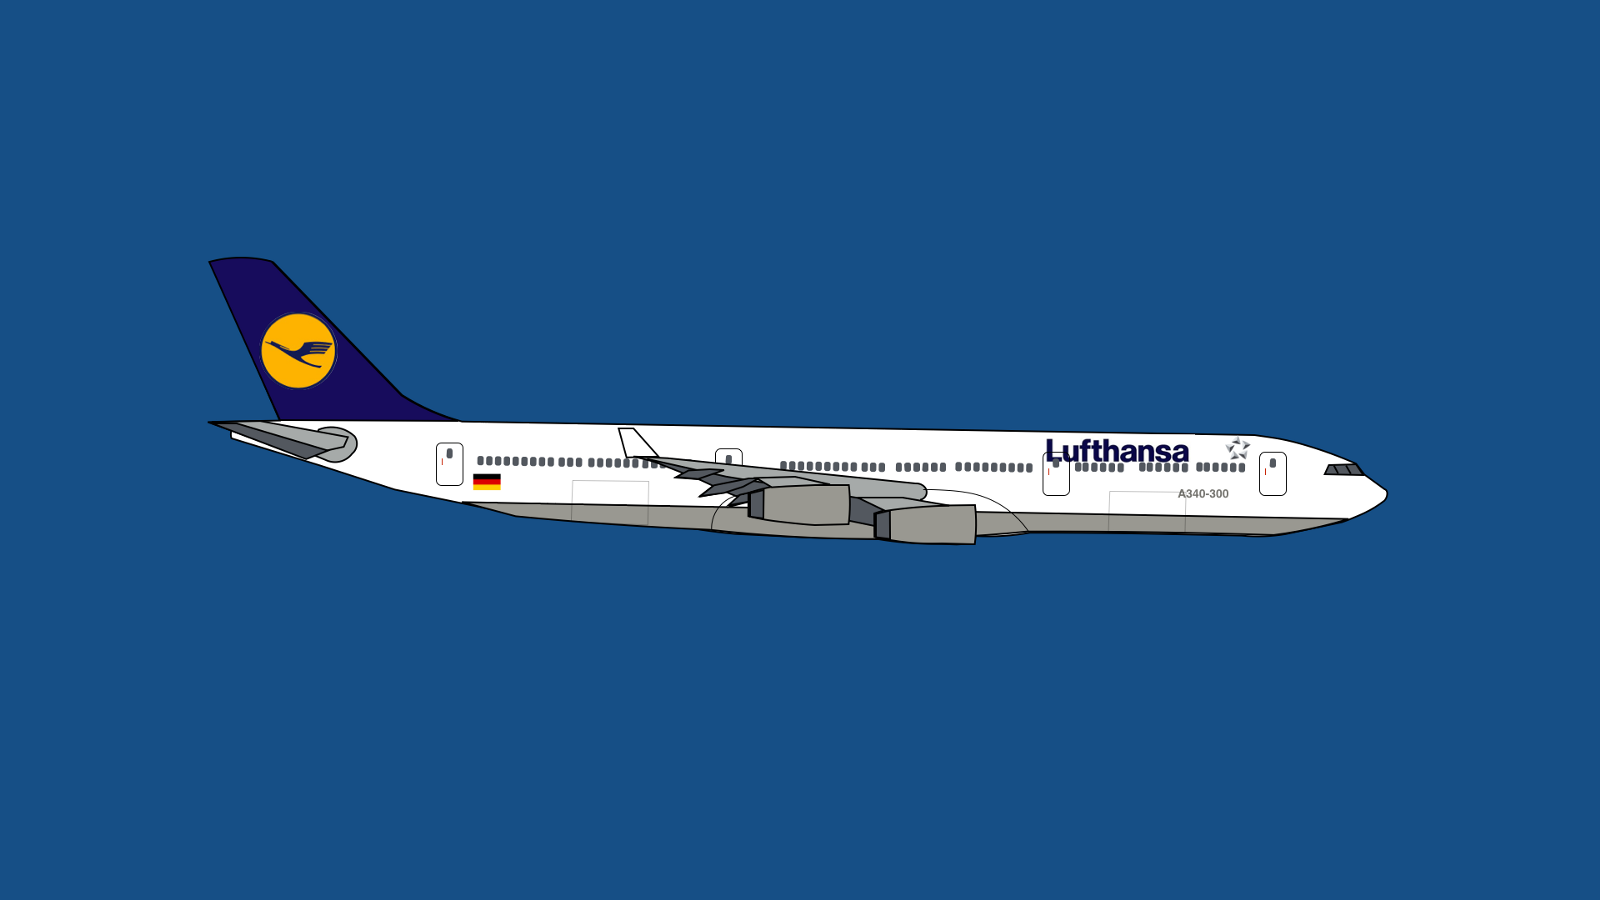 How to Identify a Commercial Aircraft